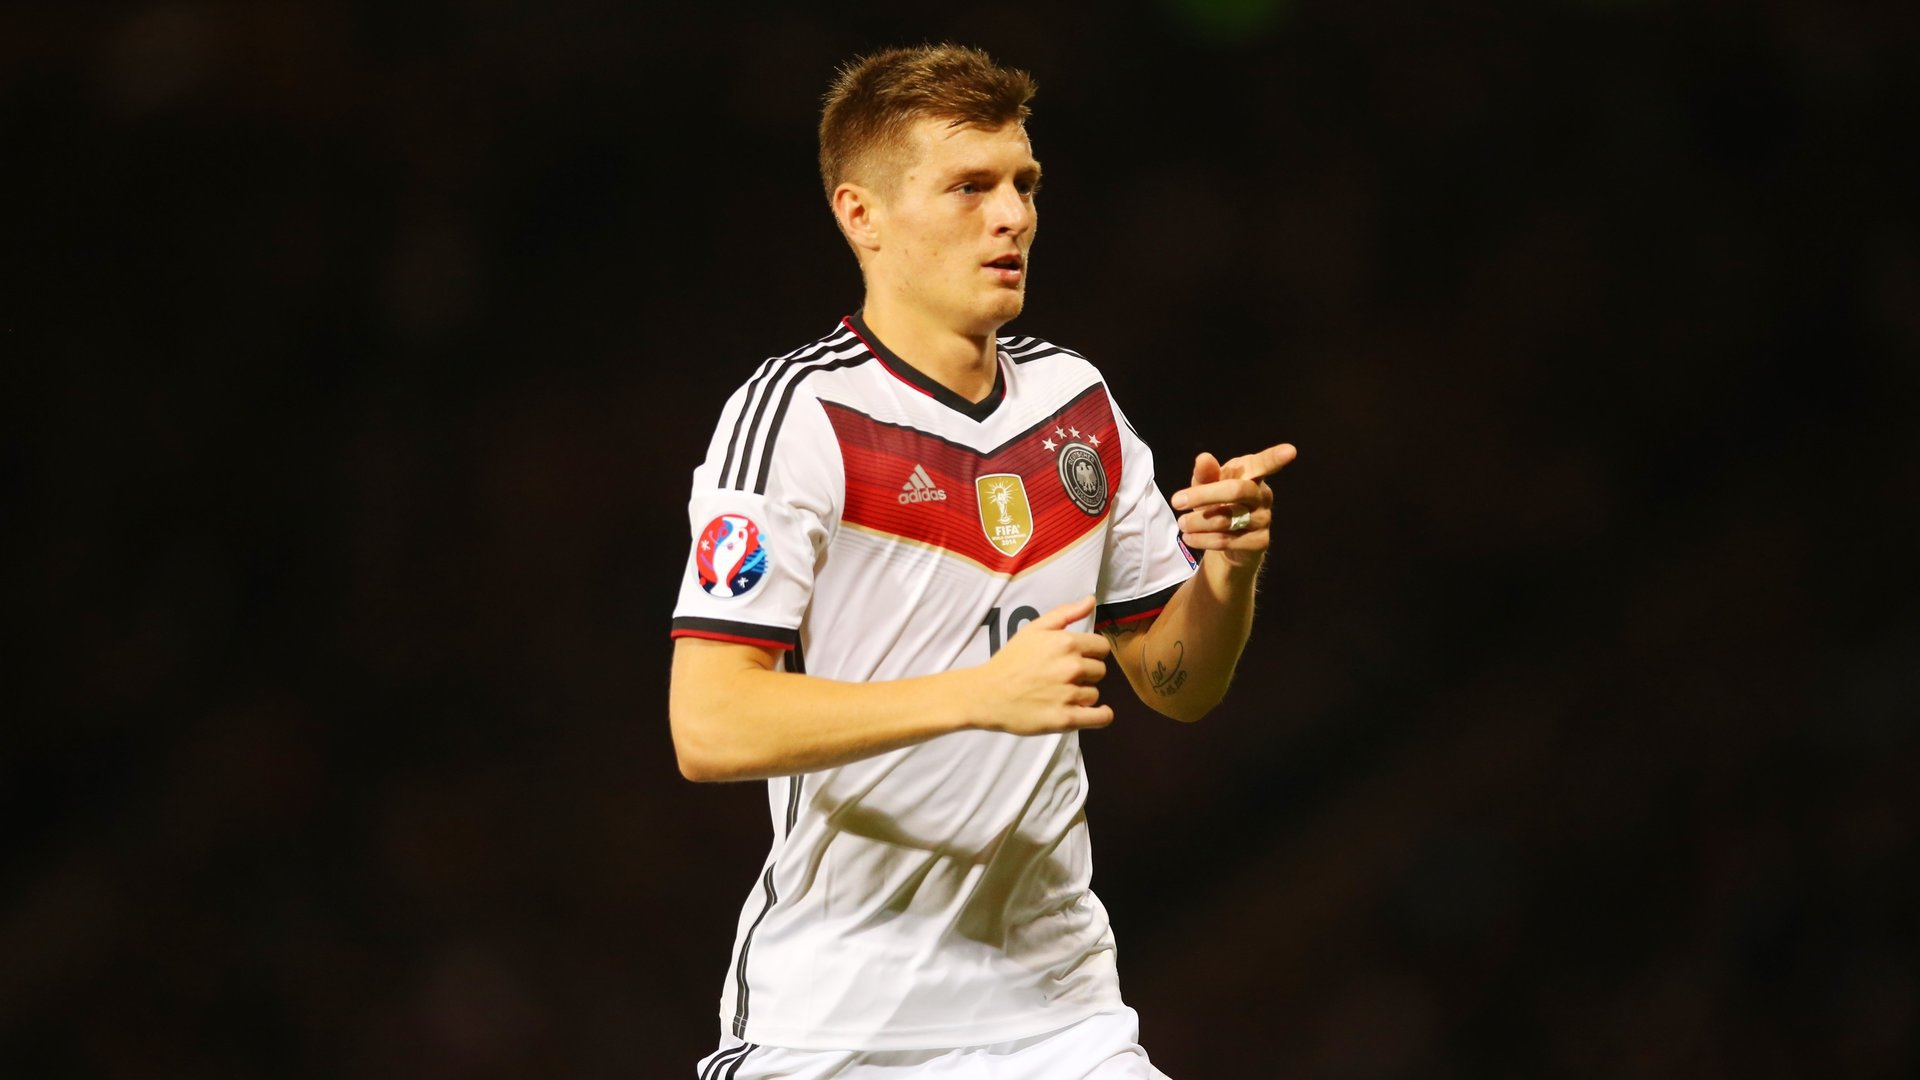 Toni Kroos Wallpapers And Backgrounds